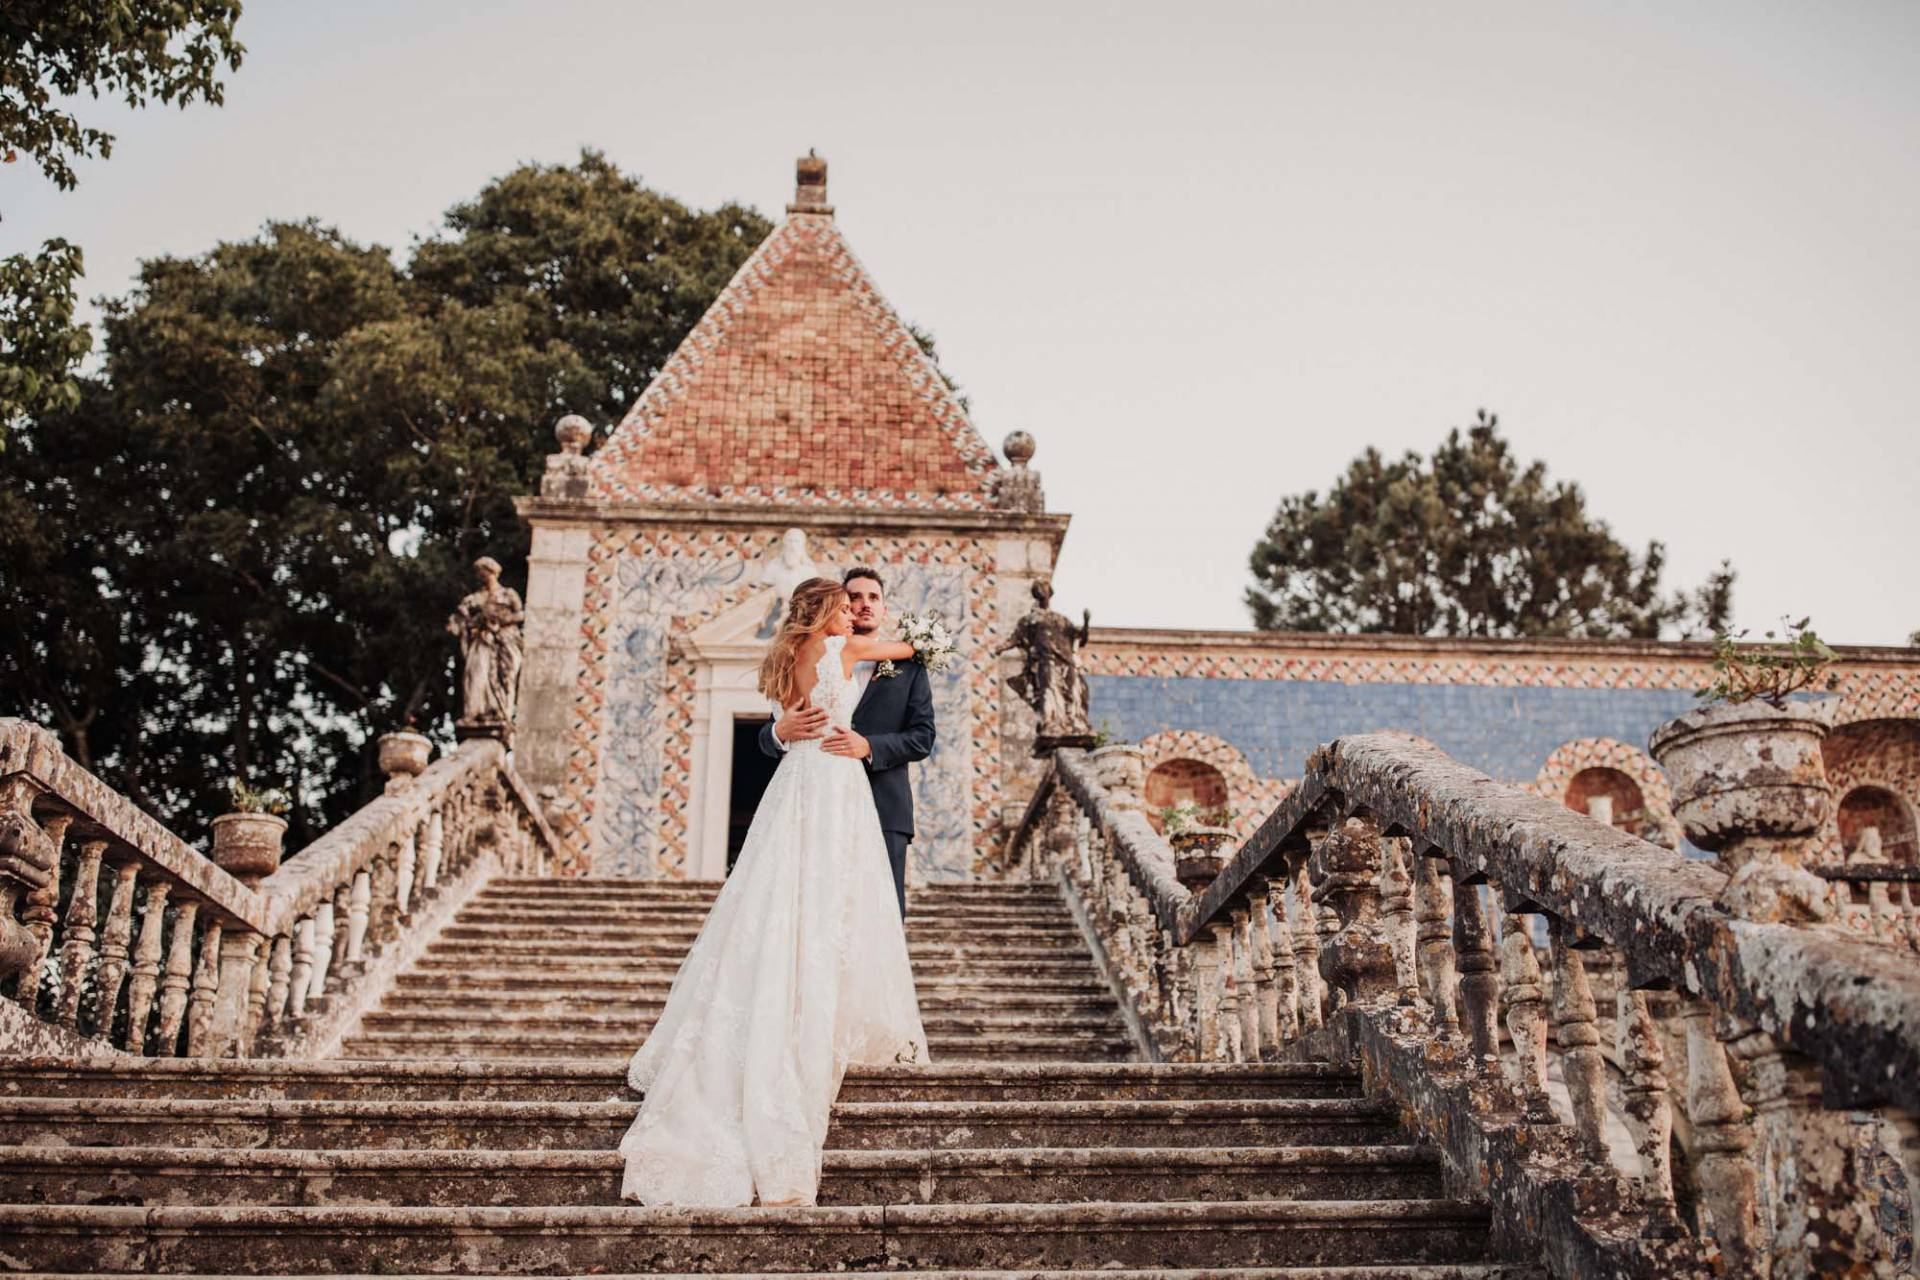 Romantic wedding at Palácio Marqueses da Fronteira